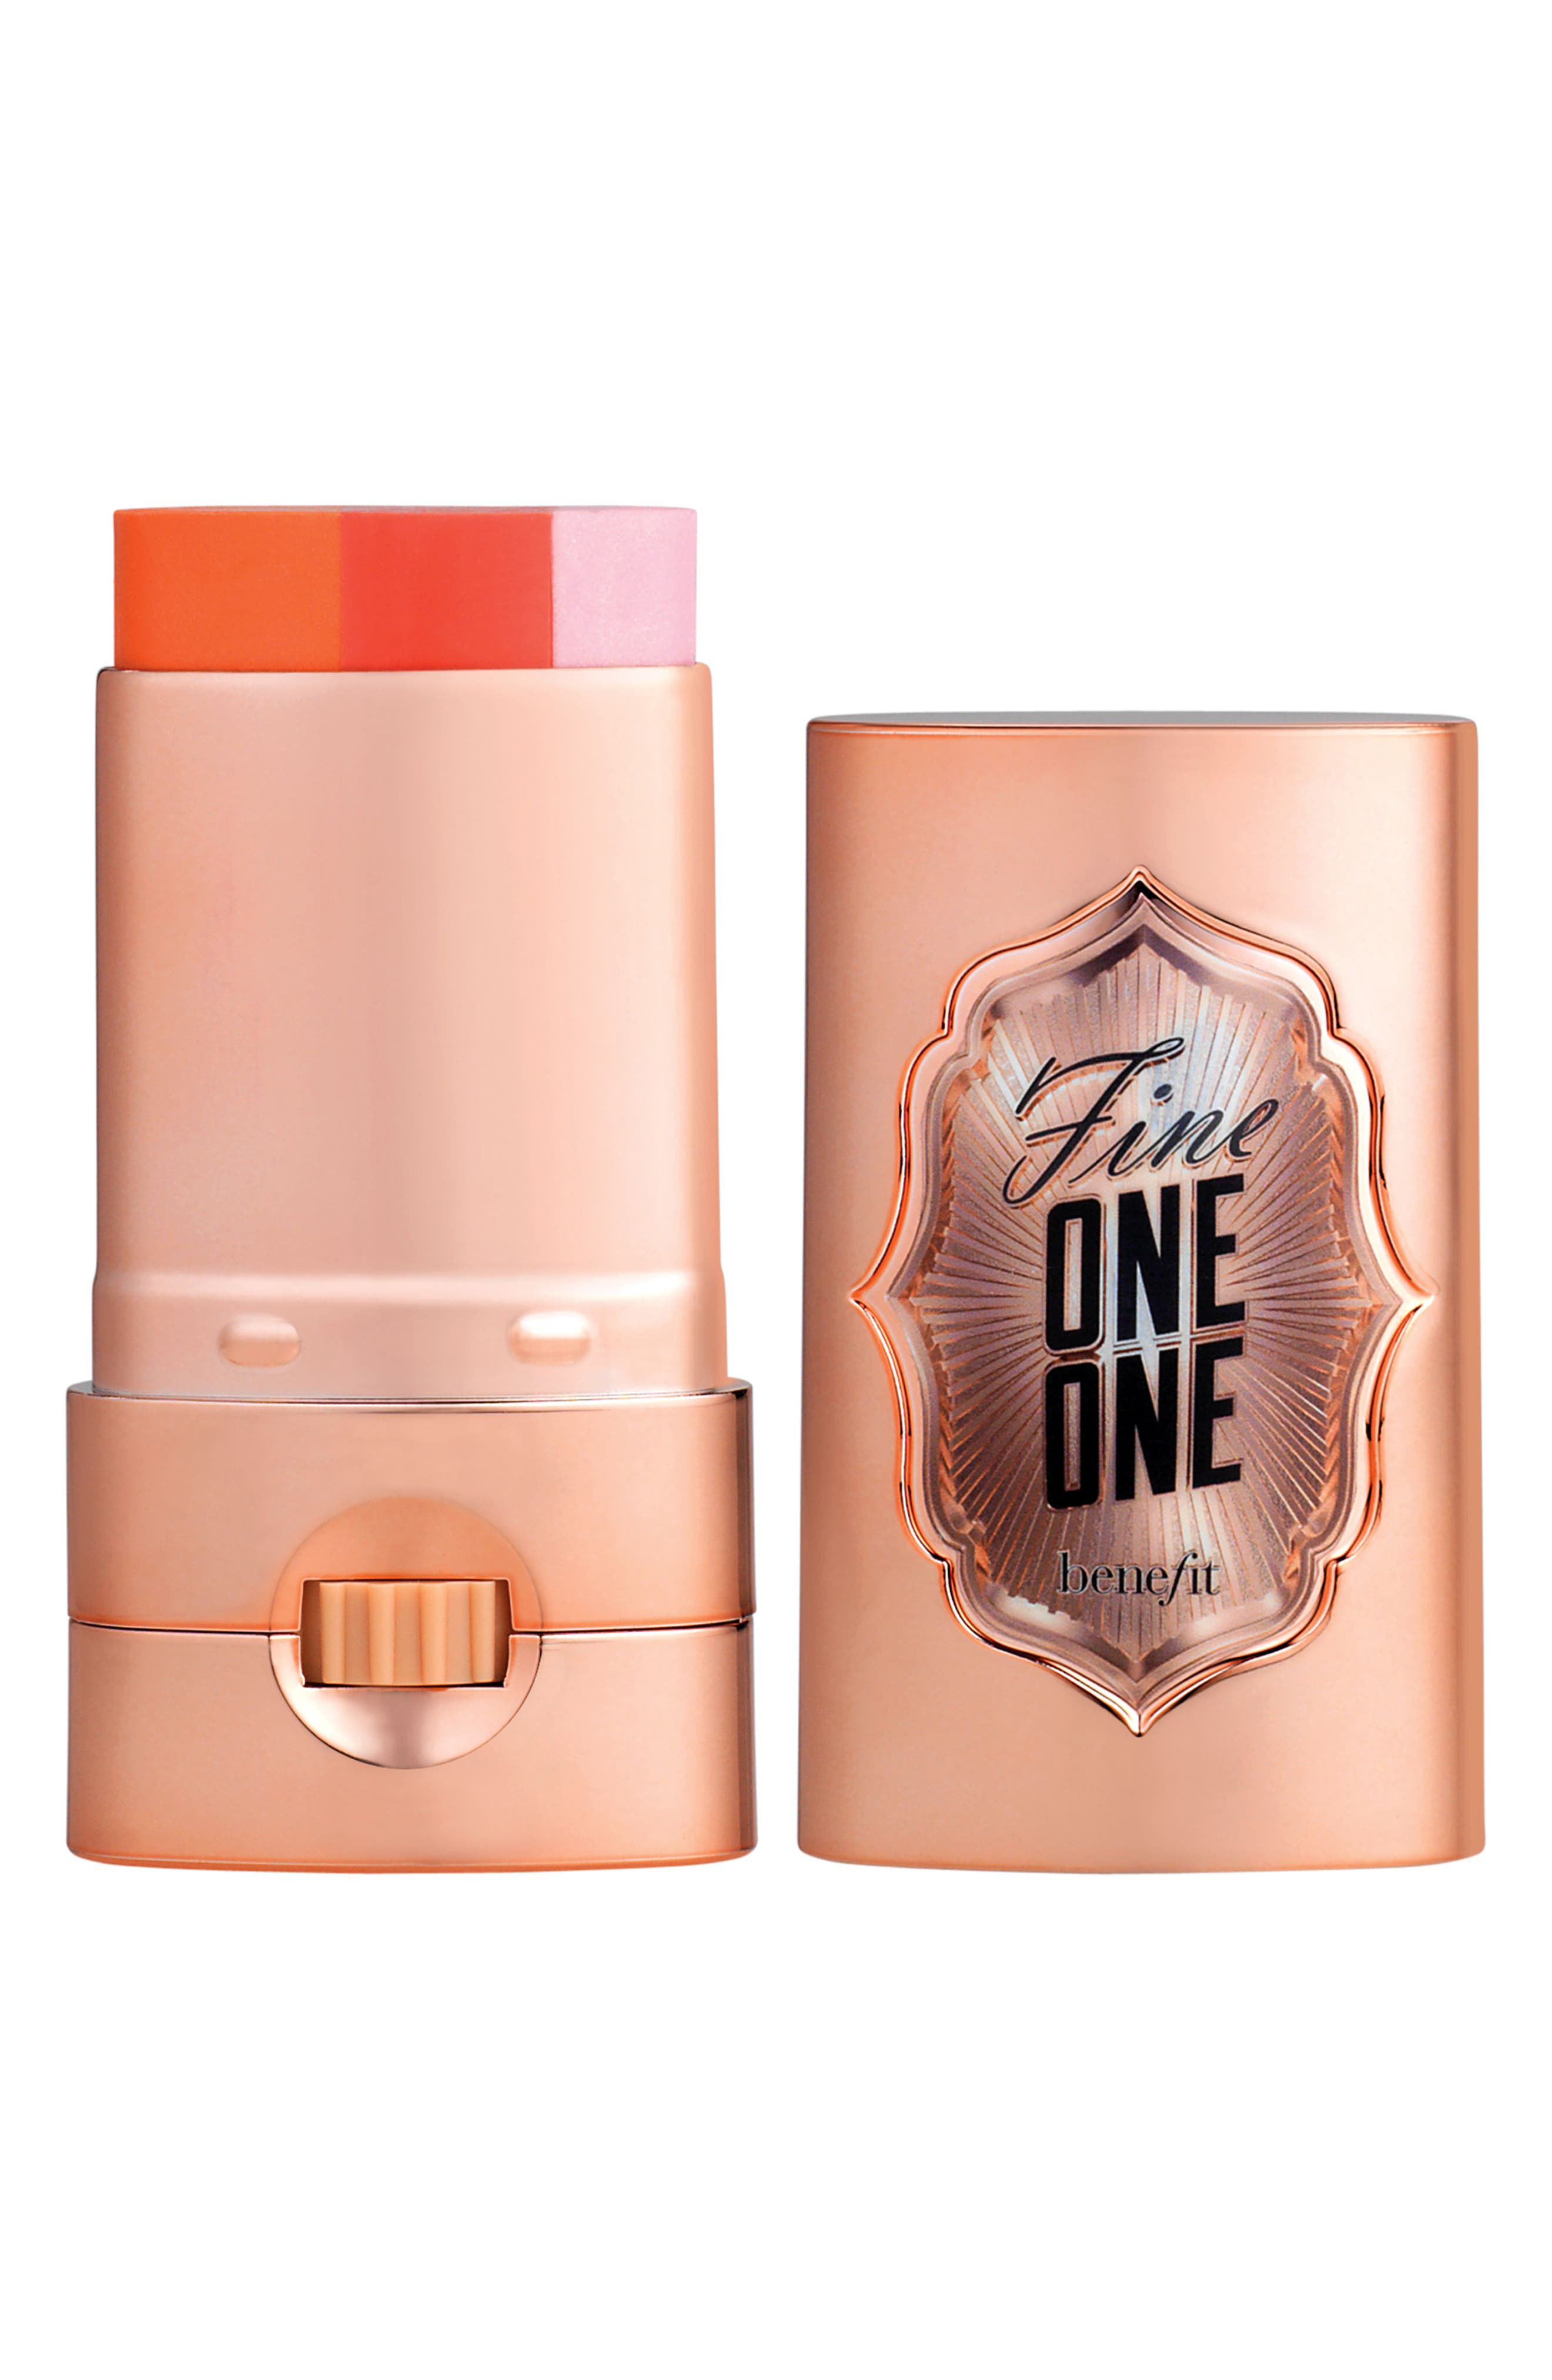 Main Image - Benefit Fine-One-One Brightening Color for Cheeks & Lips